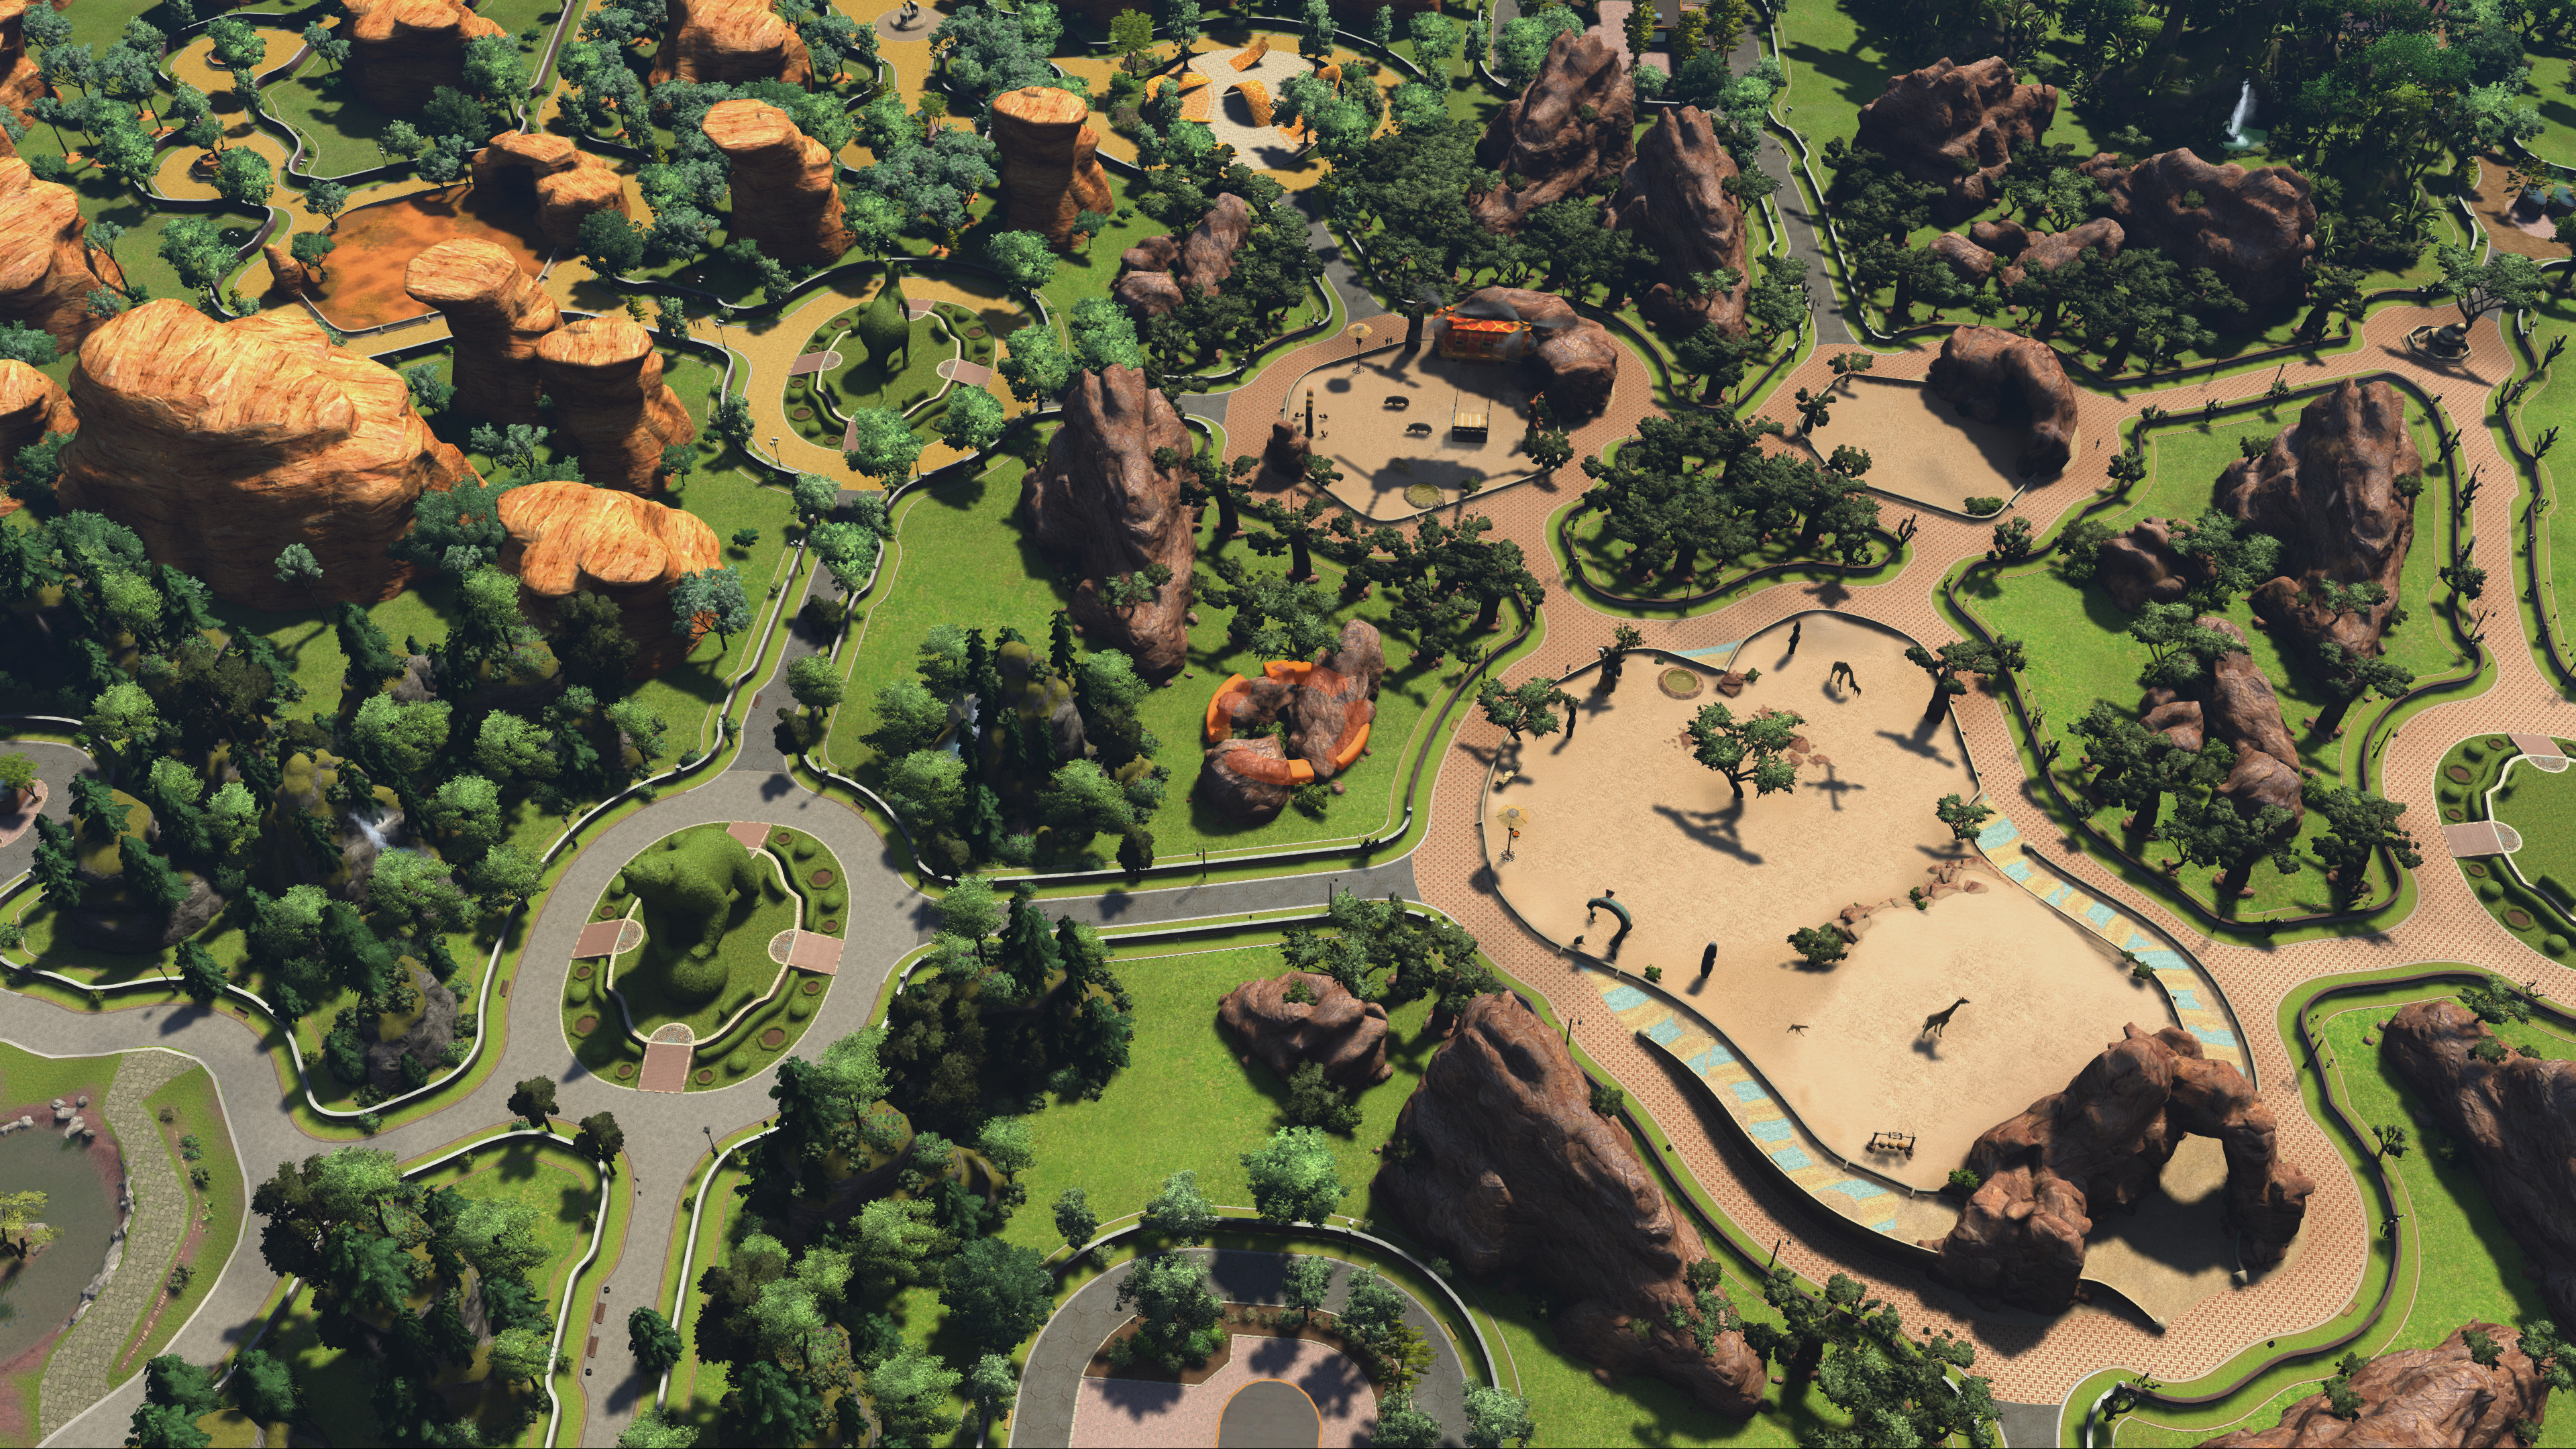 zoo tycoon ultimate animal collection download size